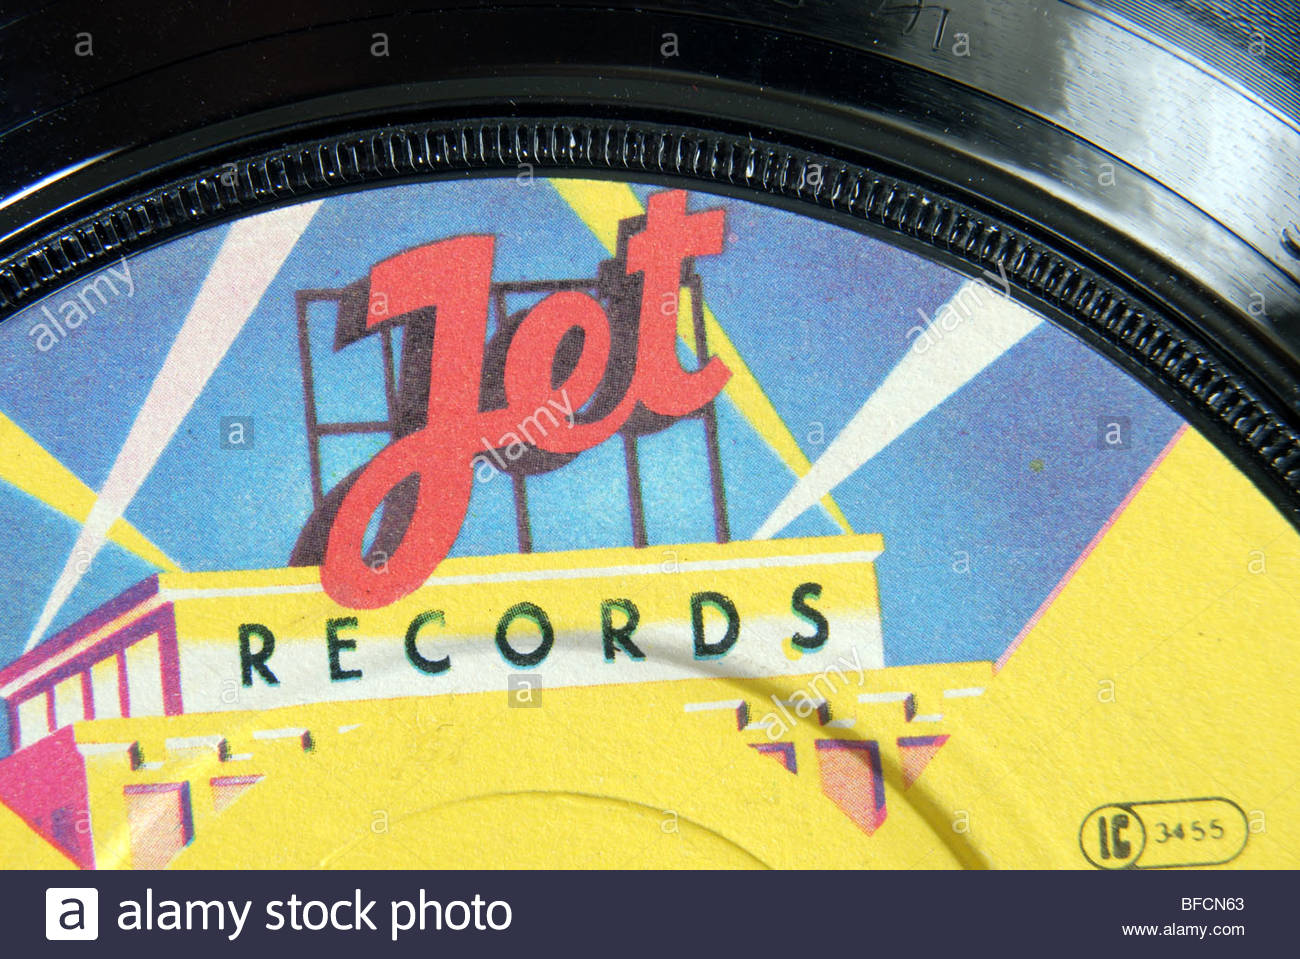 Label of a  Jet records 45 rpm record. - Stock Image